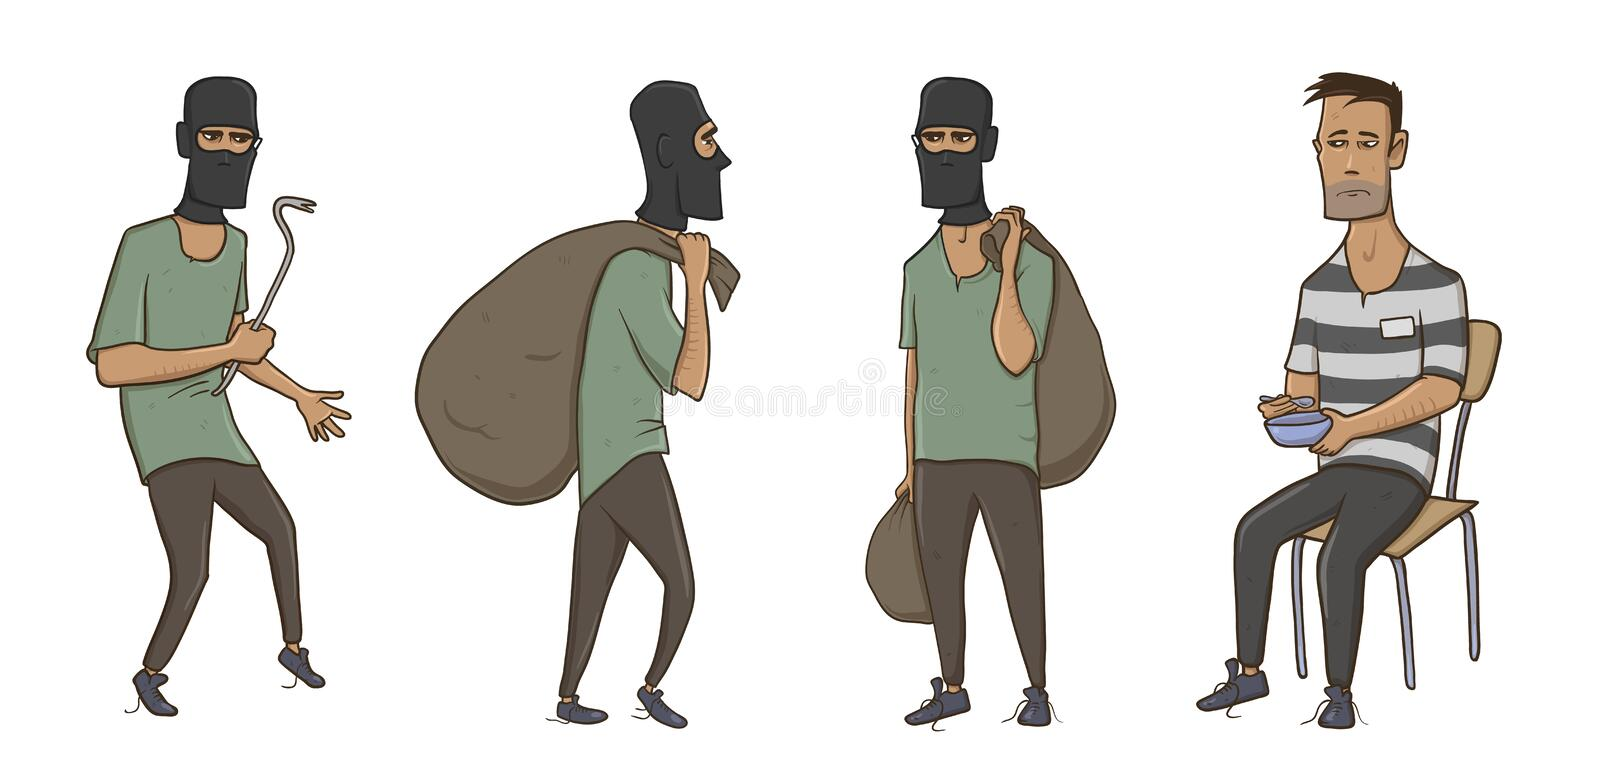 A burglar, robber, thief, man in balaclava mask with huge sack and crowbar. A criminal in prison in striped clothes royalty free illustration